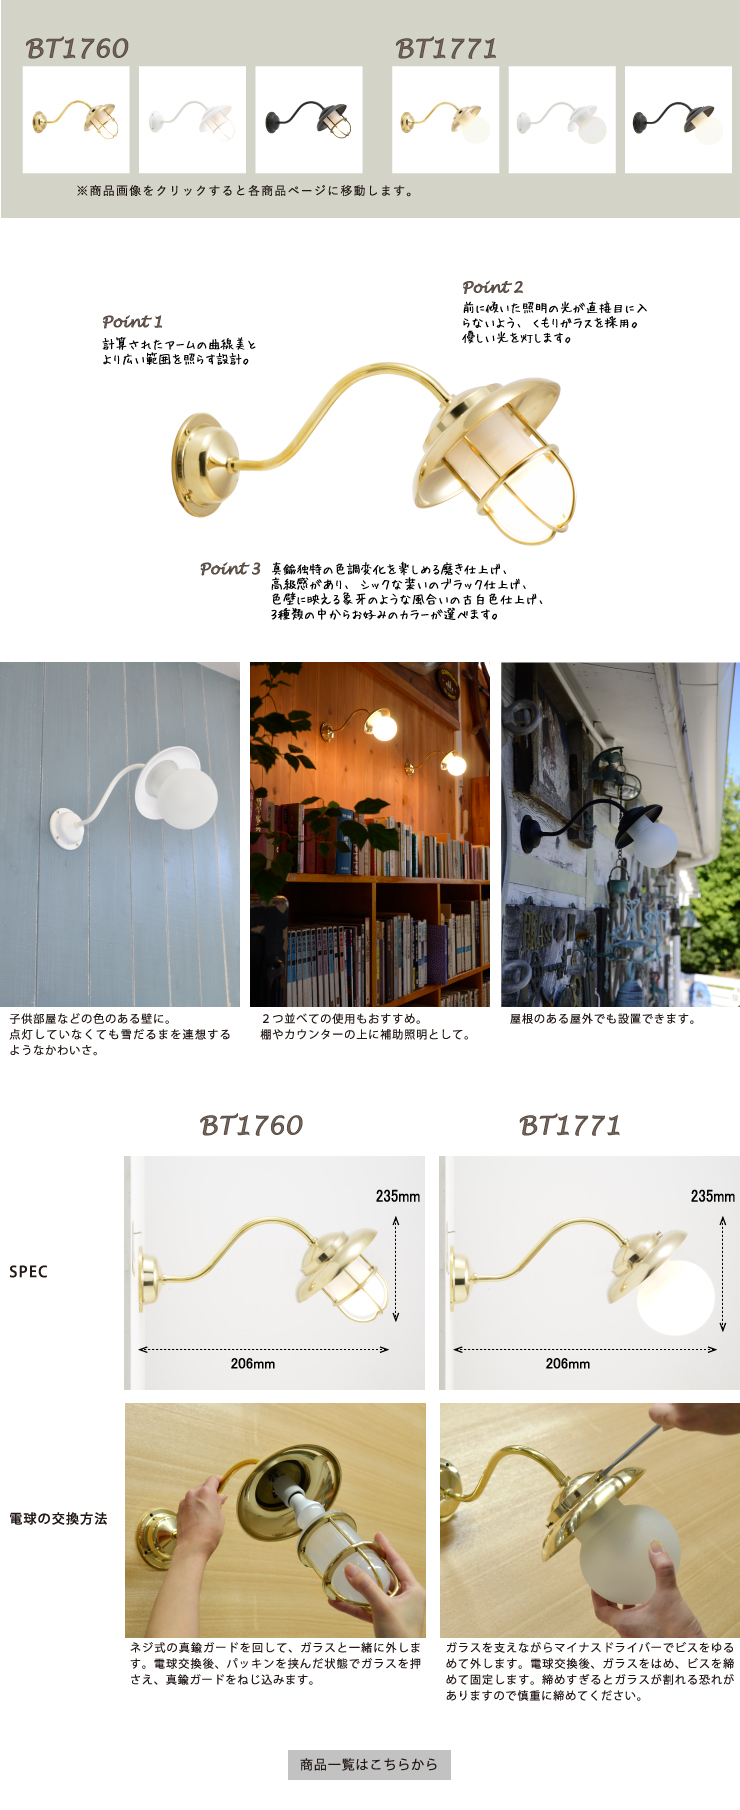 BTseries Porch Light詳細